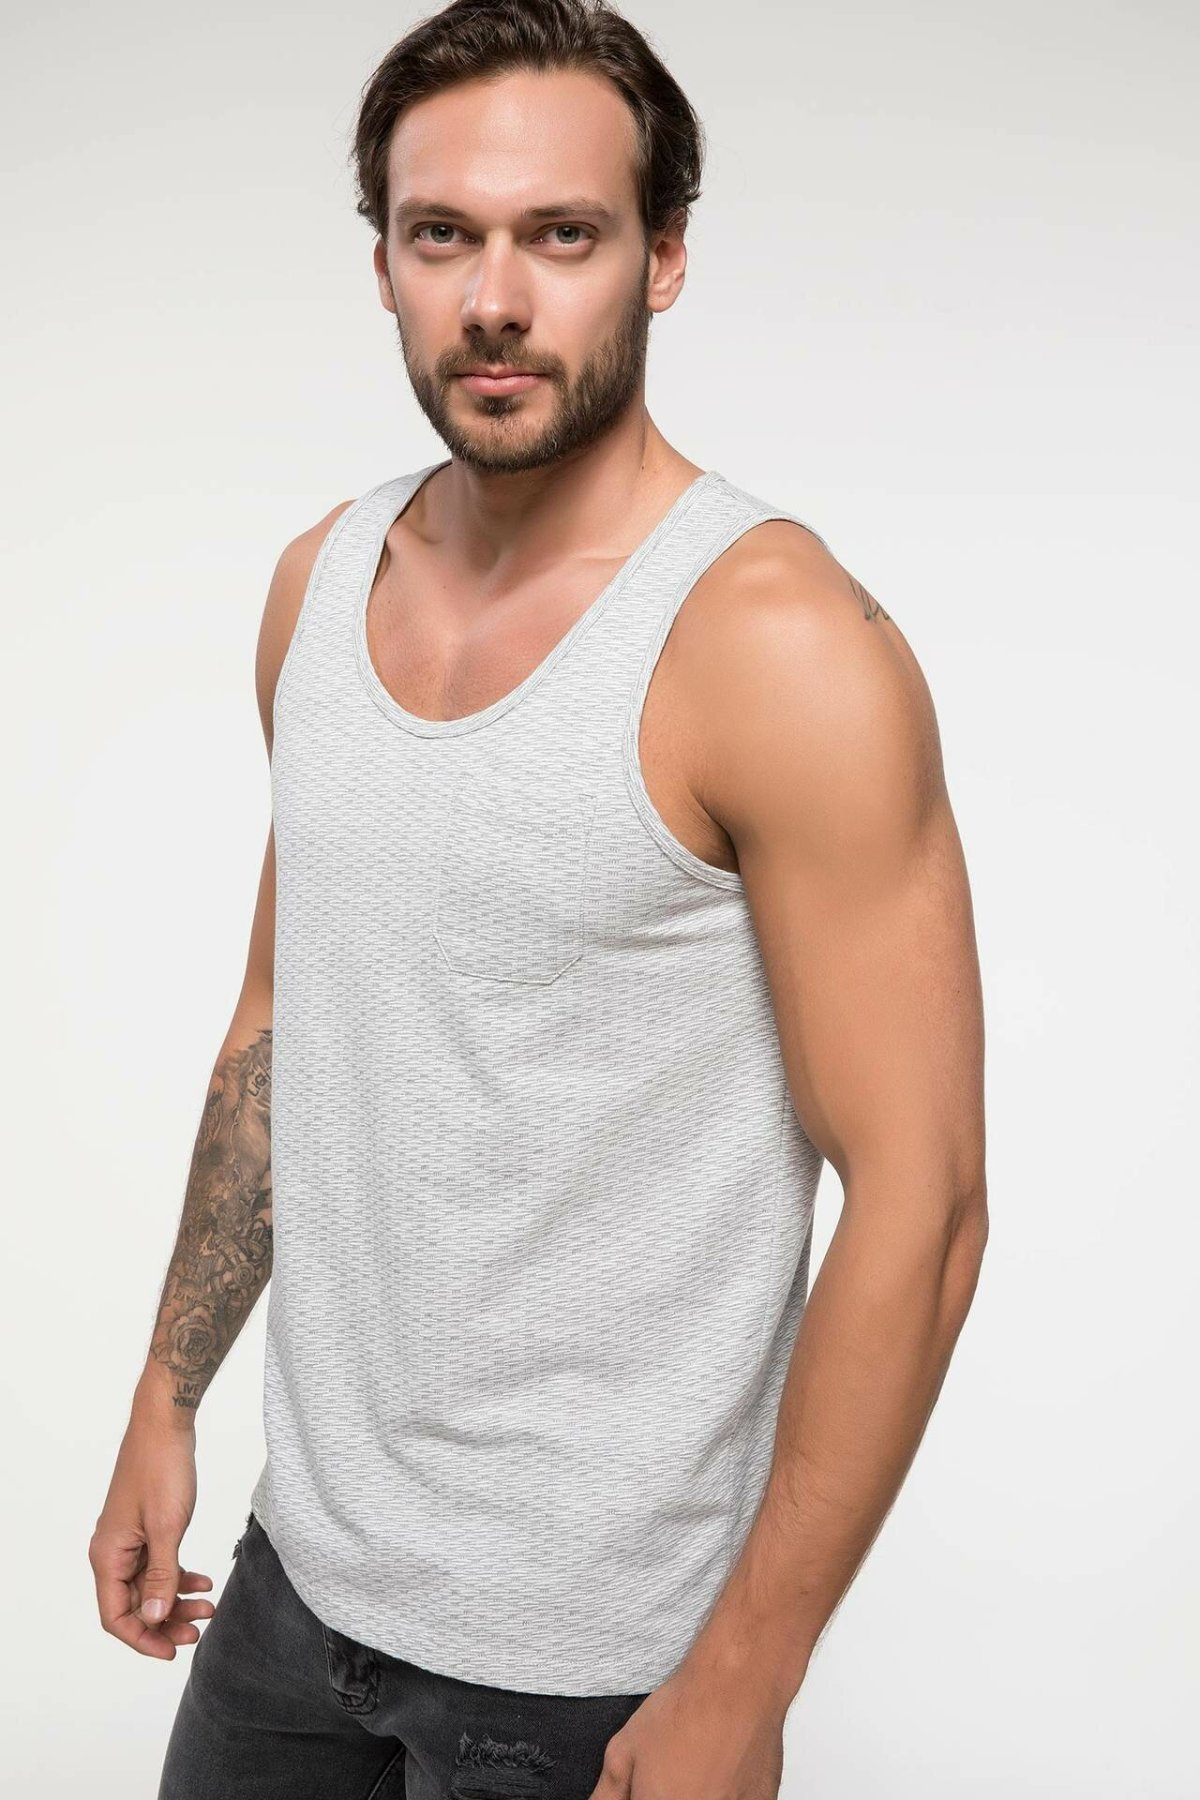 DeFacto Summer Mens Cotton Tank Tops Light Grey Sleeveless Male Knitted Athl Camis Tops I8740AZ18SMGR210-I8740AZ18SM